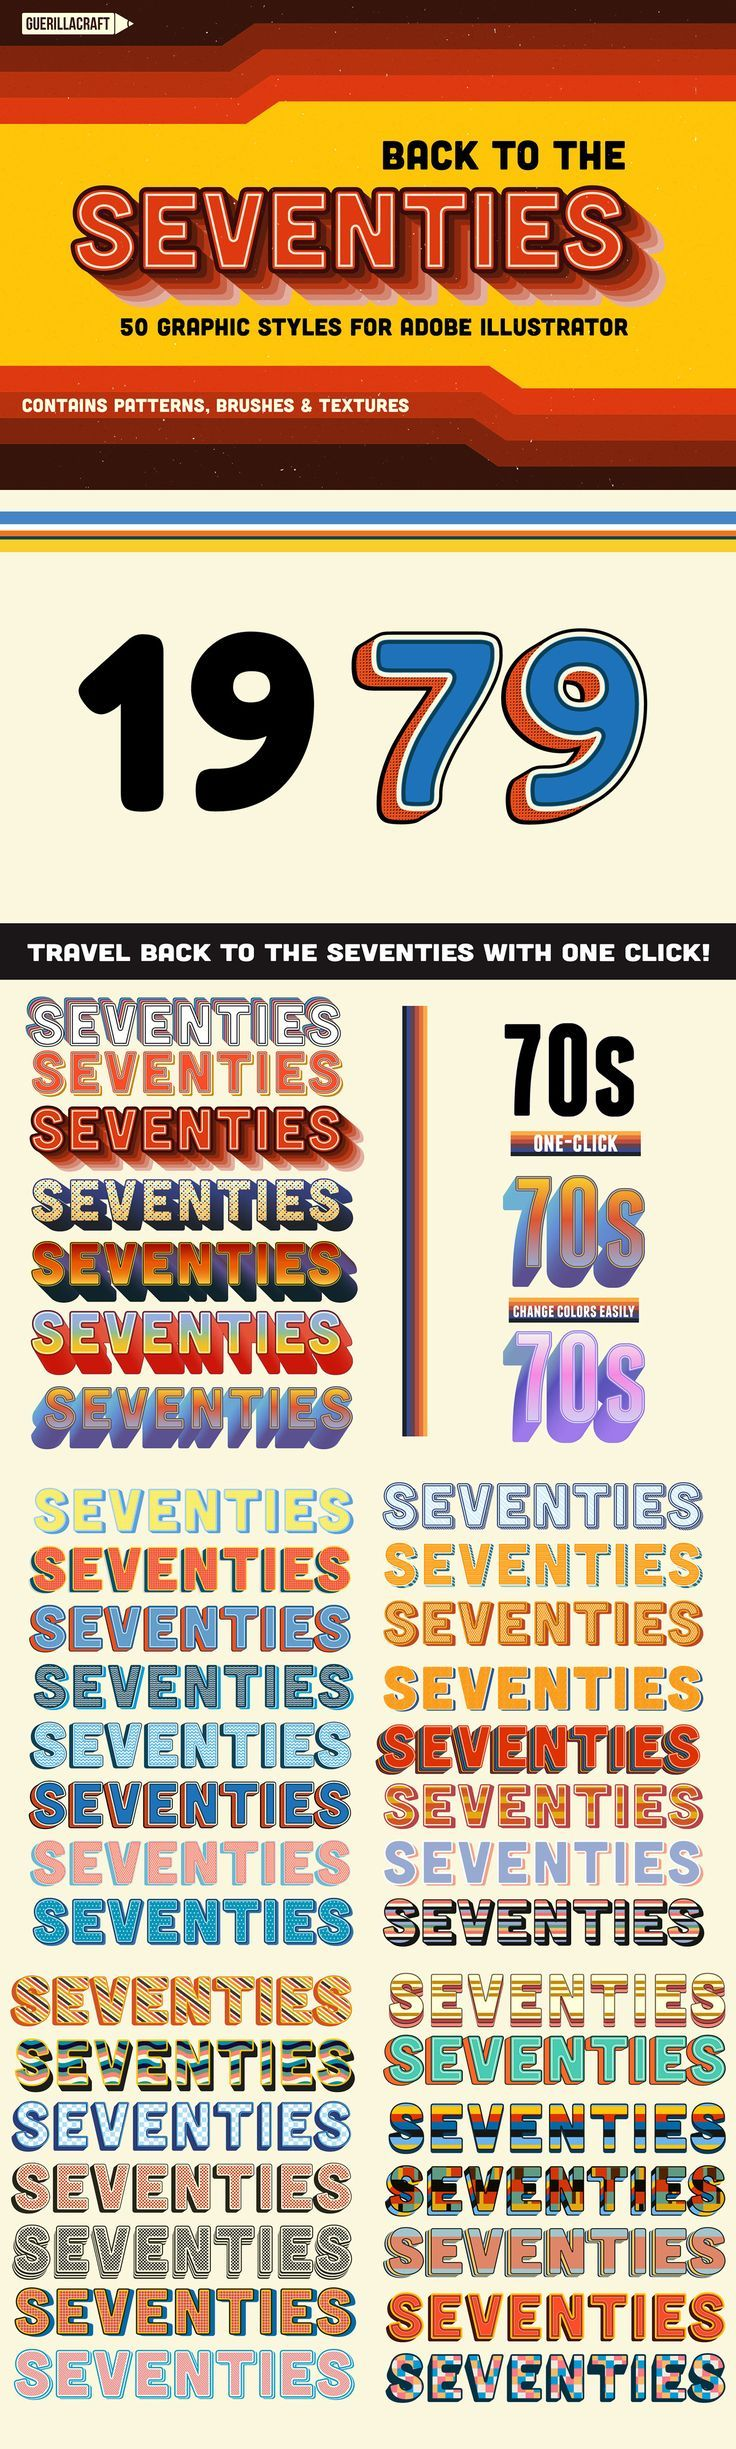 Back to the Seventies is a collection 57 Graphic Styles for Adobe Illustrator. With one click you can make beautiful typography effects inspired by 70s pop culture. Extremely time-saving if you are working on posters or web graphics. With this collection